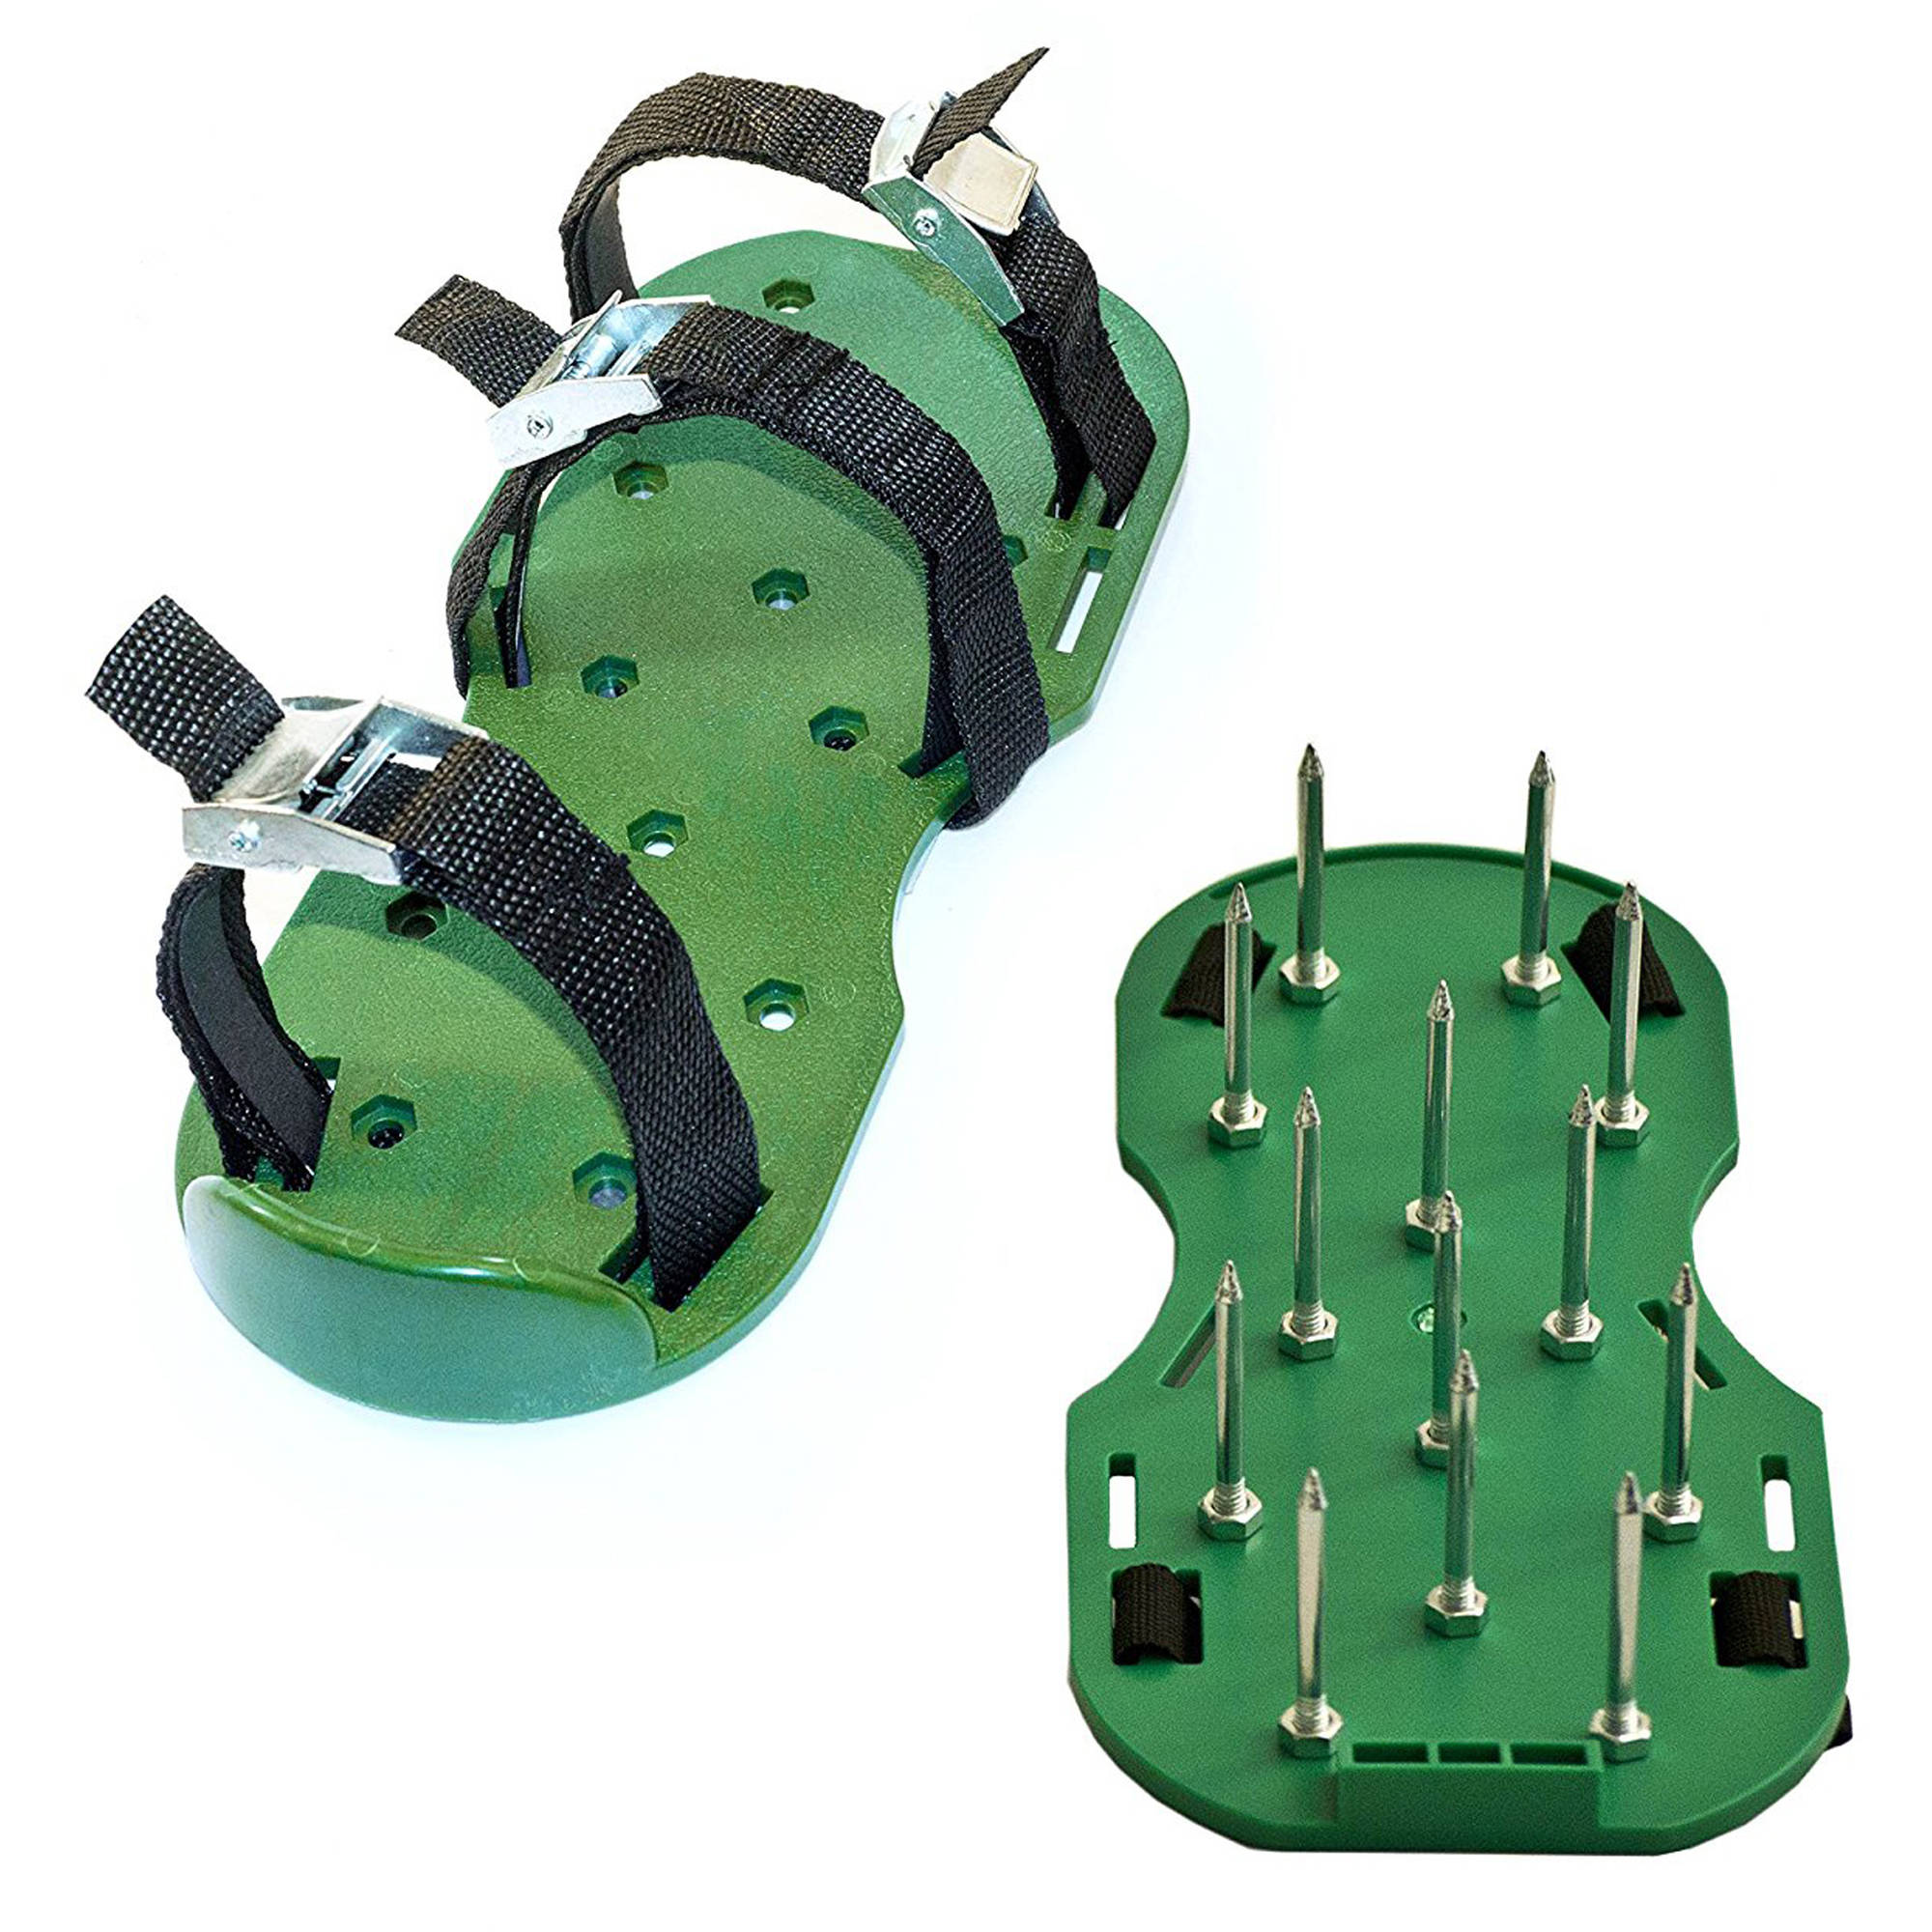 ALEKO AP2143 Lawn Garden Sharp Aerating Spike Shoes, Green Color